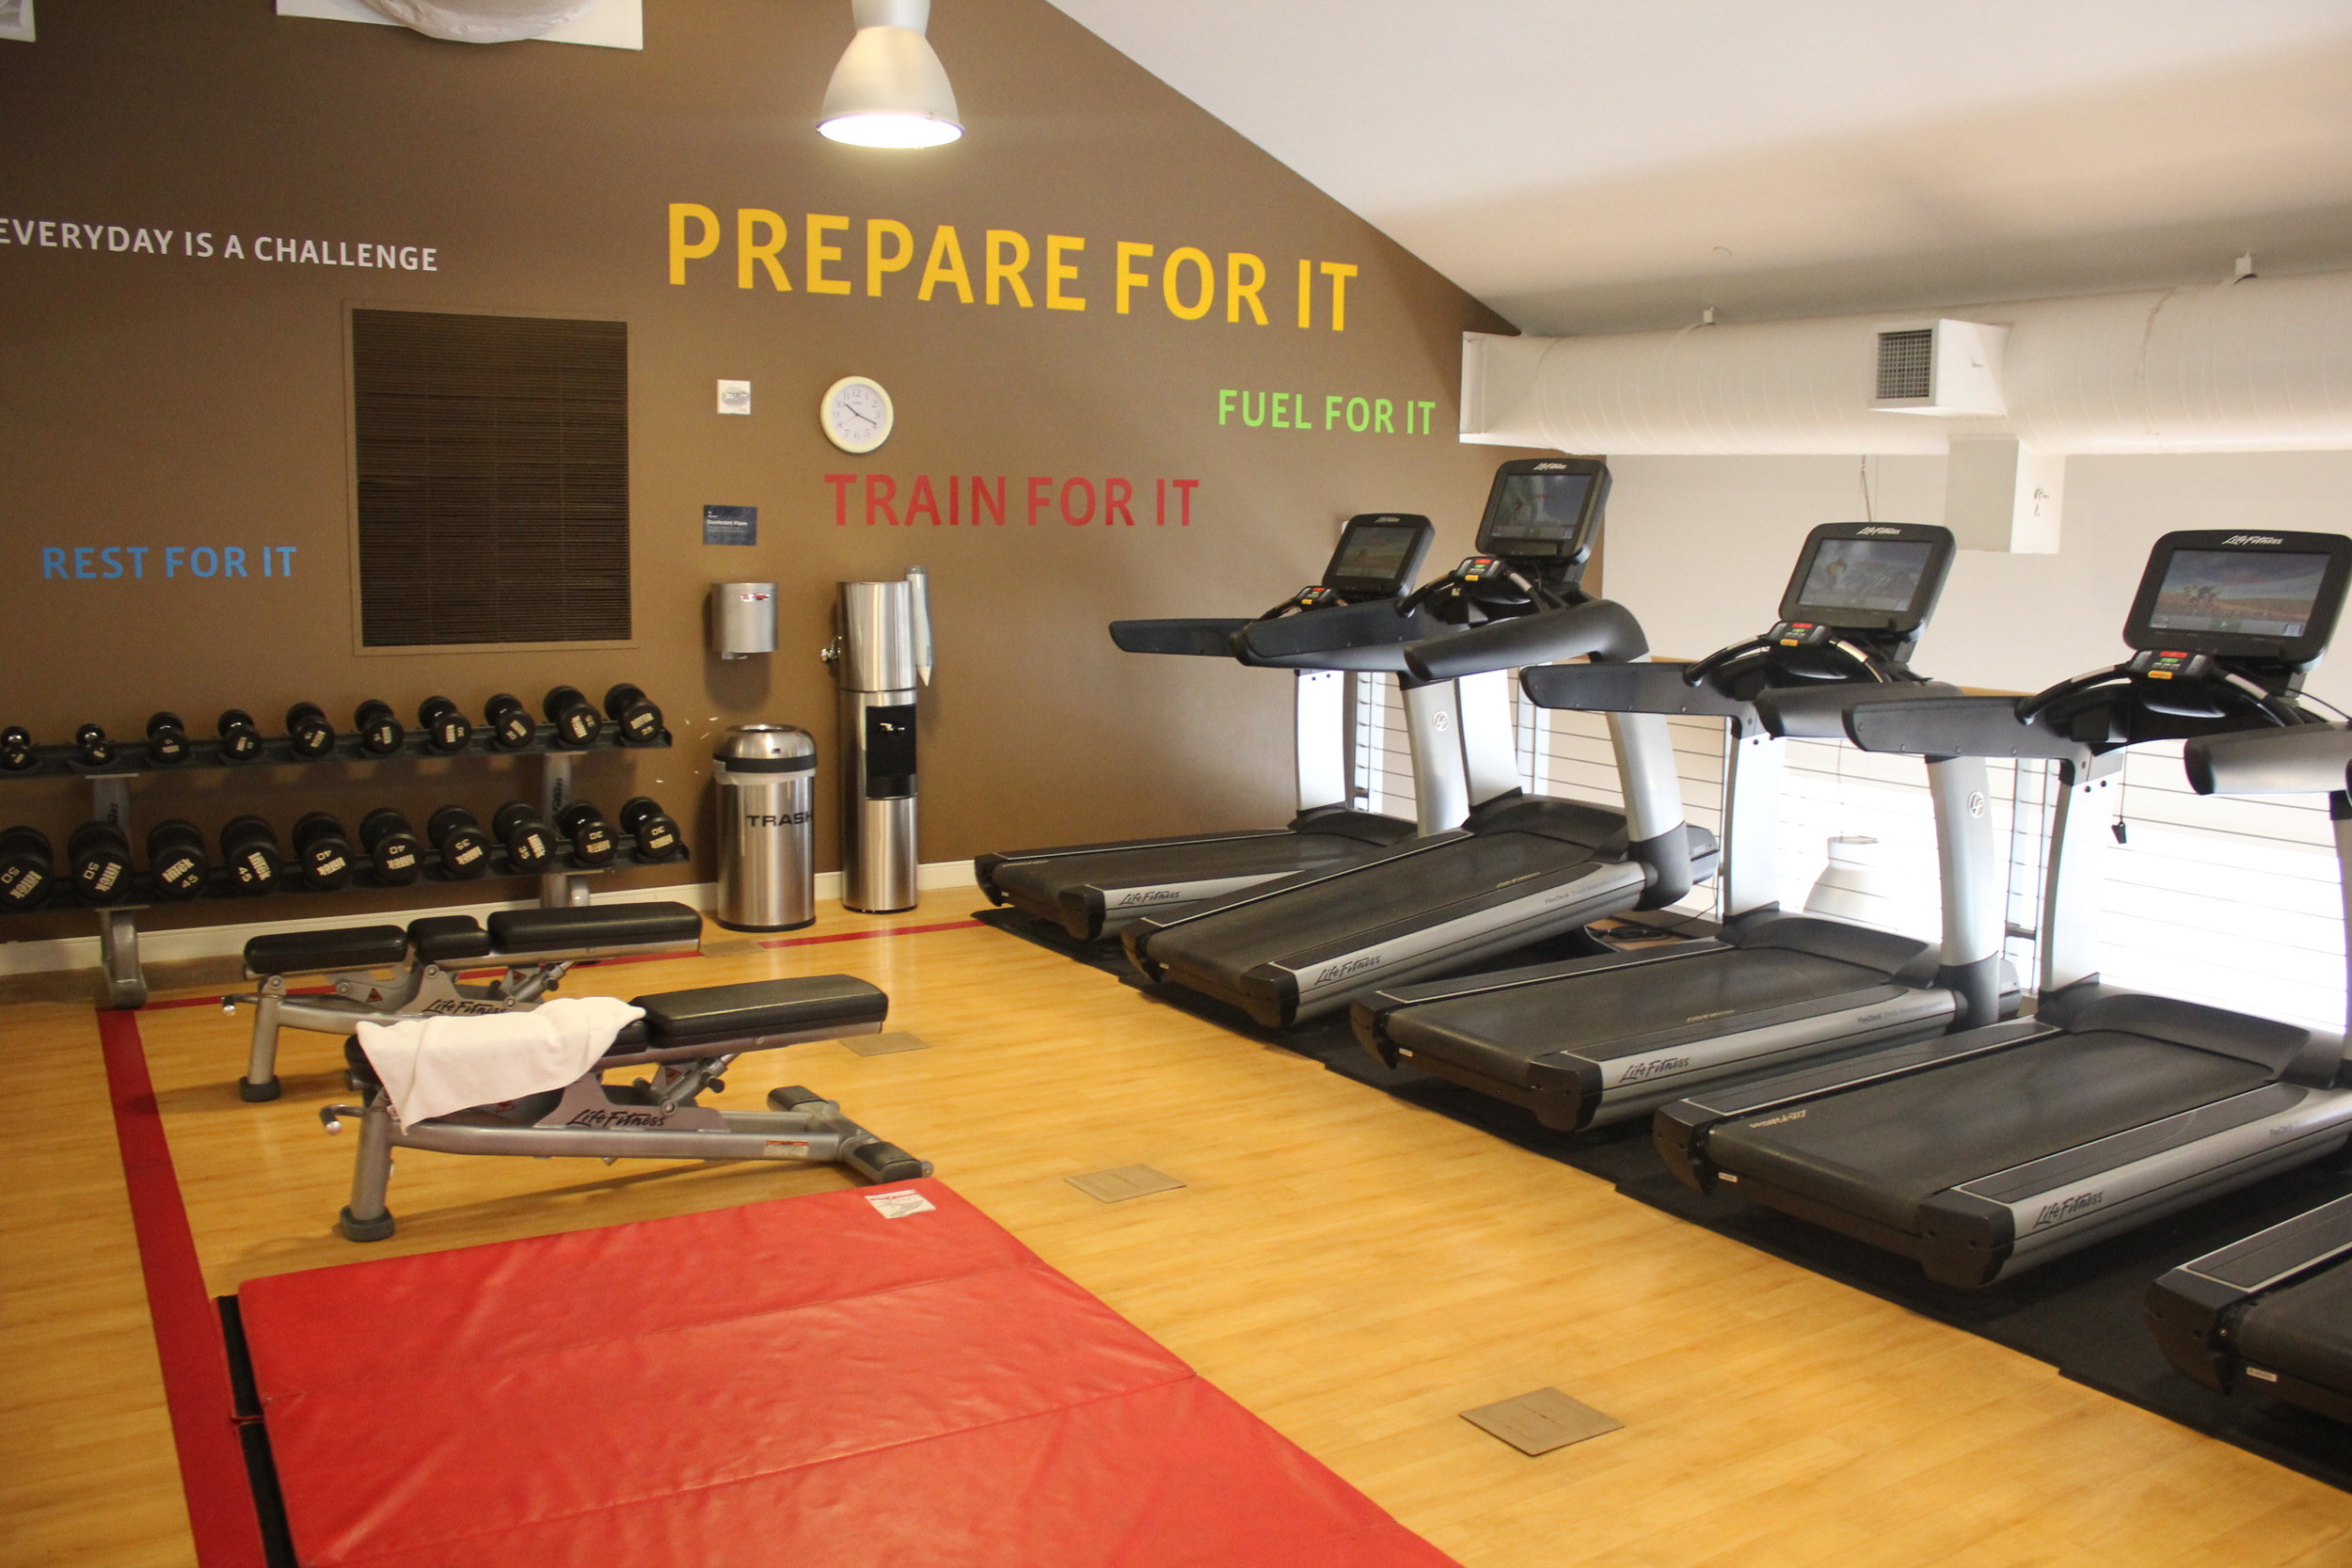 Sheraton Seattle – Free weights and cardio equipment